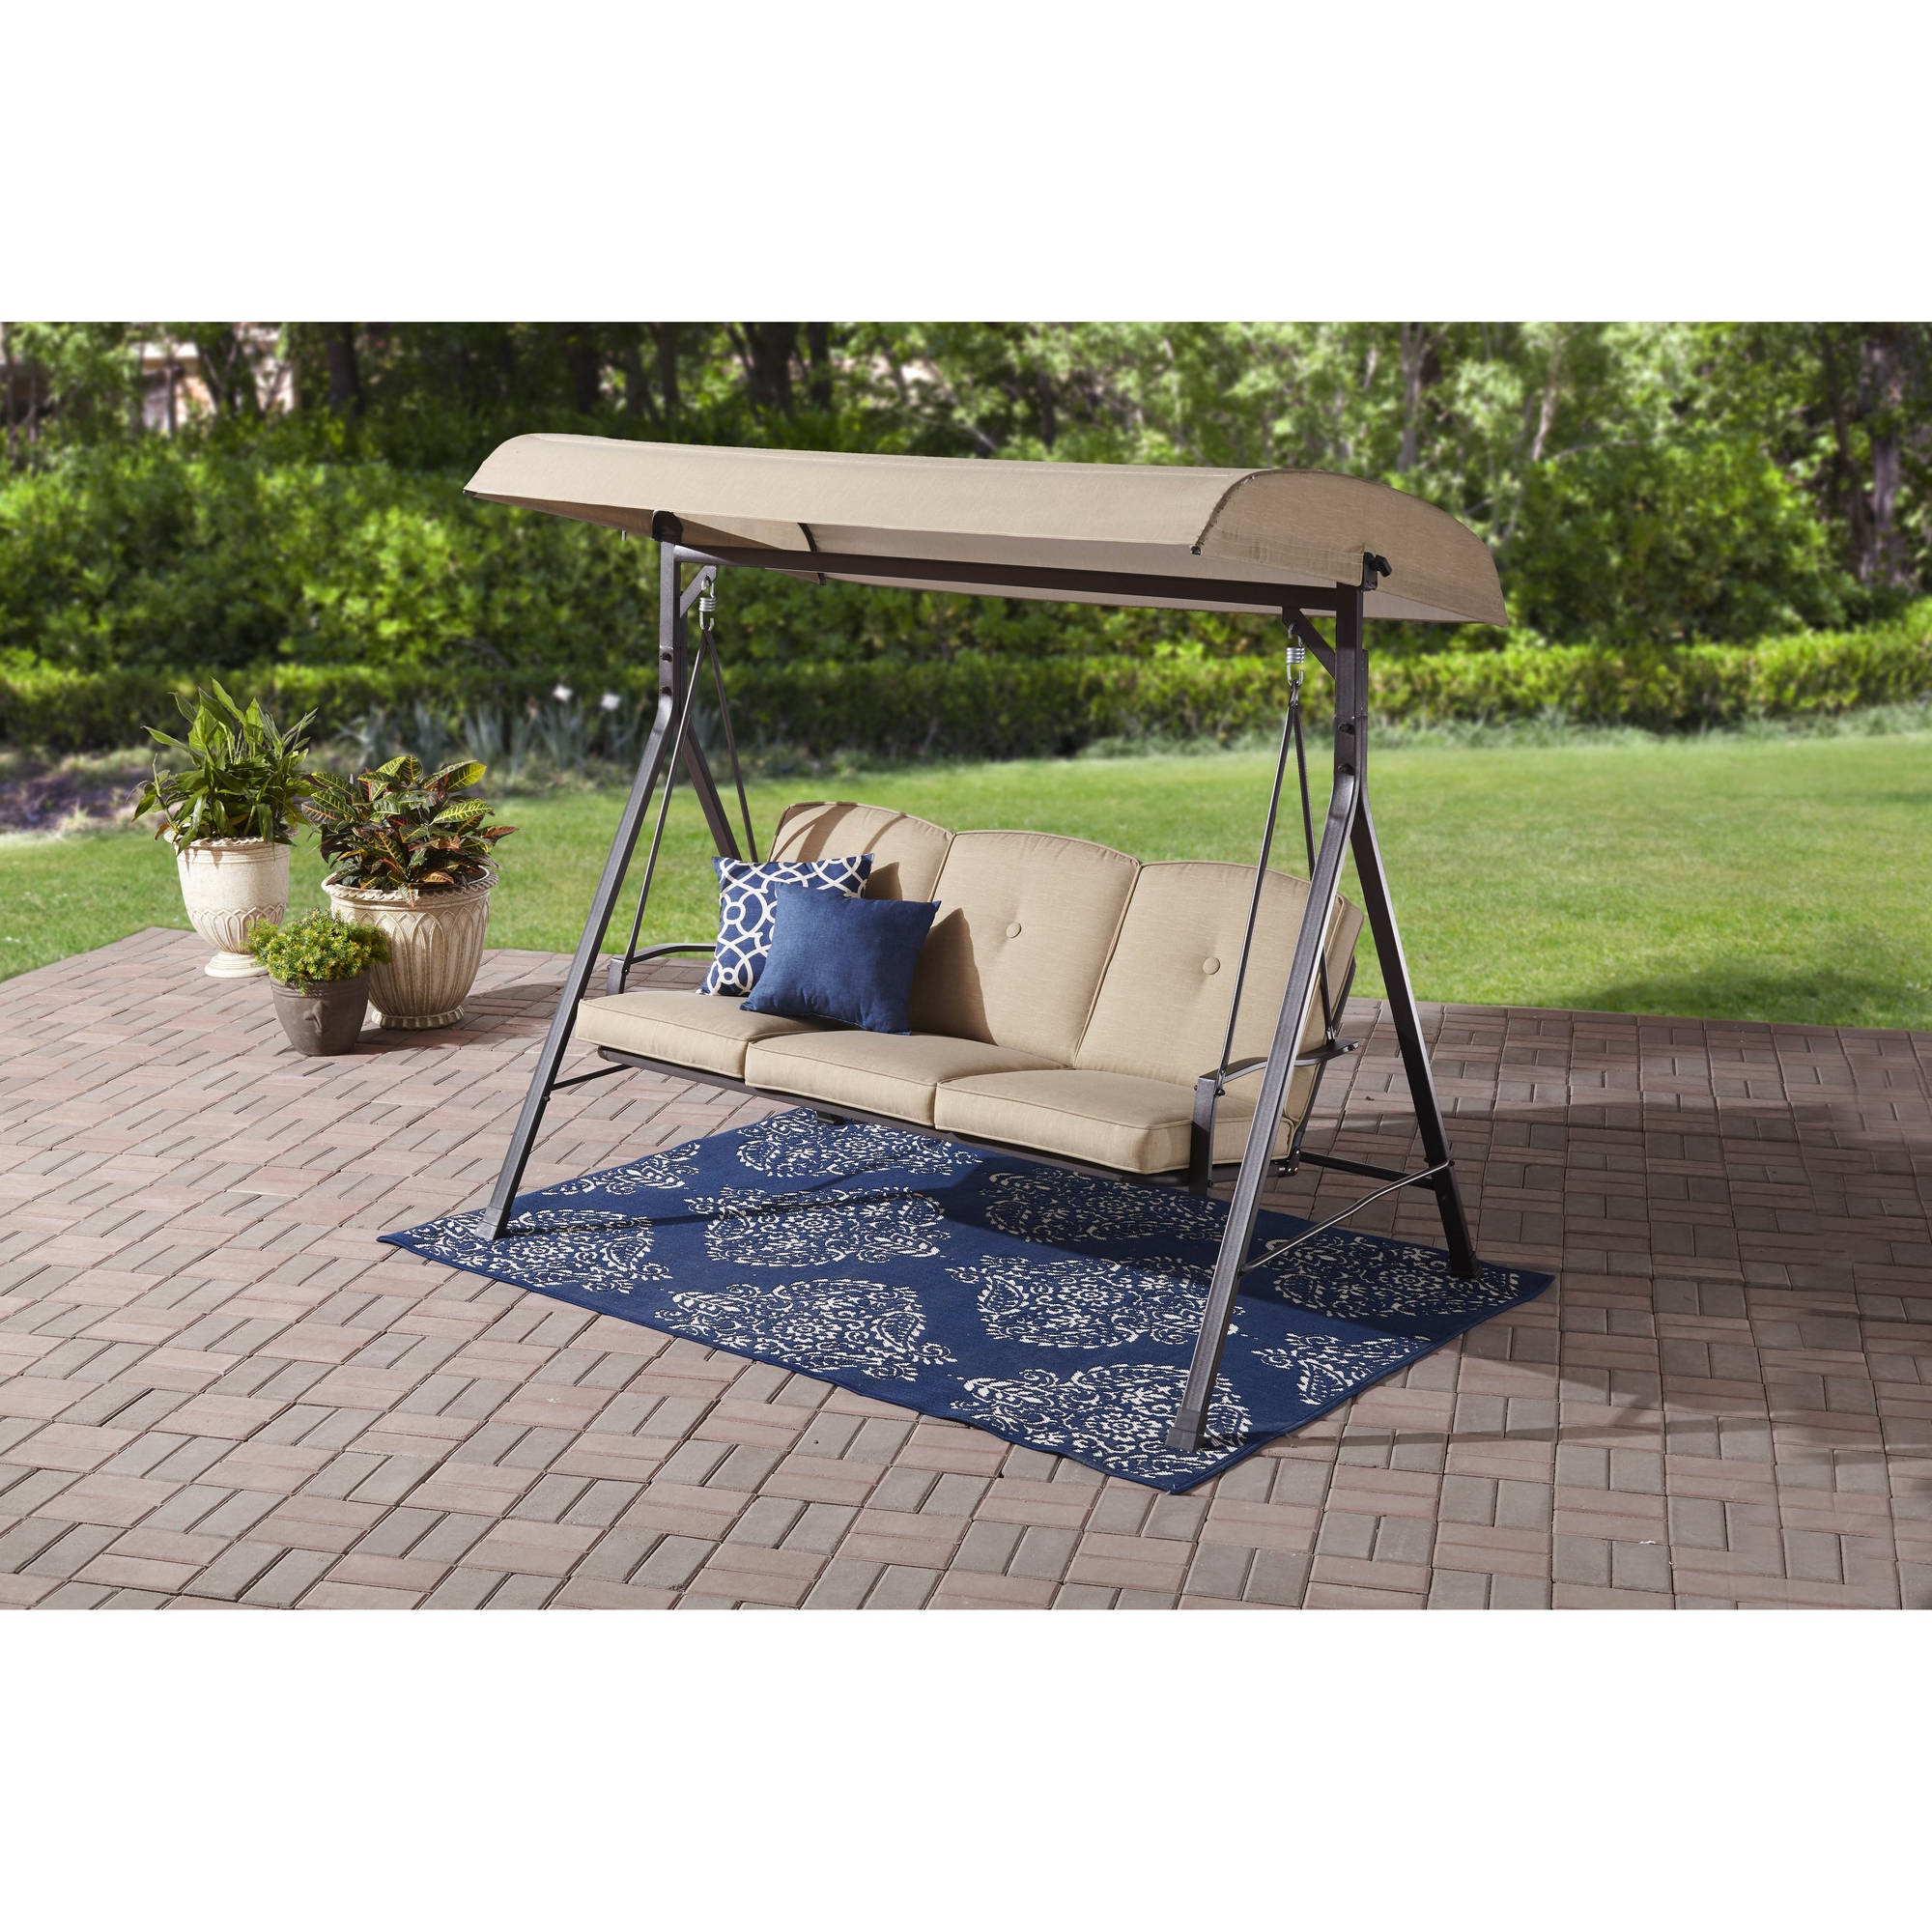 Mainstays Forest Hills 3 Seat Cushion Canopy Porch Swing